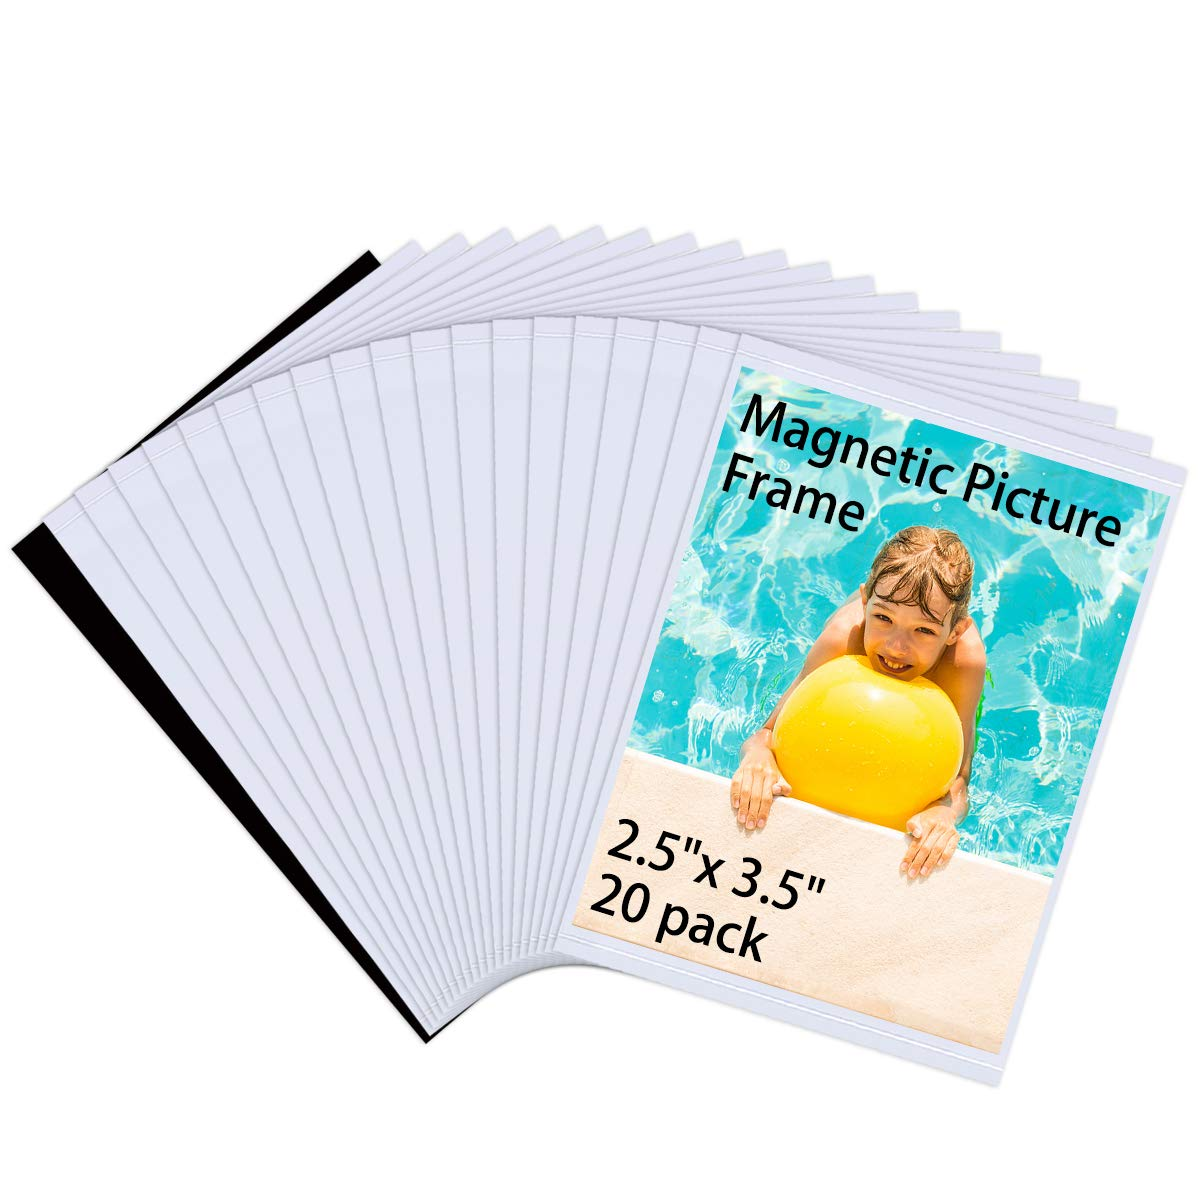 HIIMIEI Wallet Size Magnet Photo Frame Refrigerator 2.5x3.5, 2x3 Magnetic Picture Frame Fridge